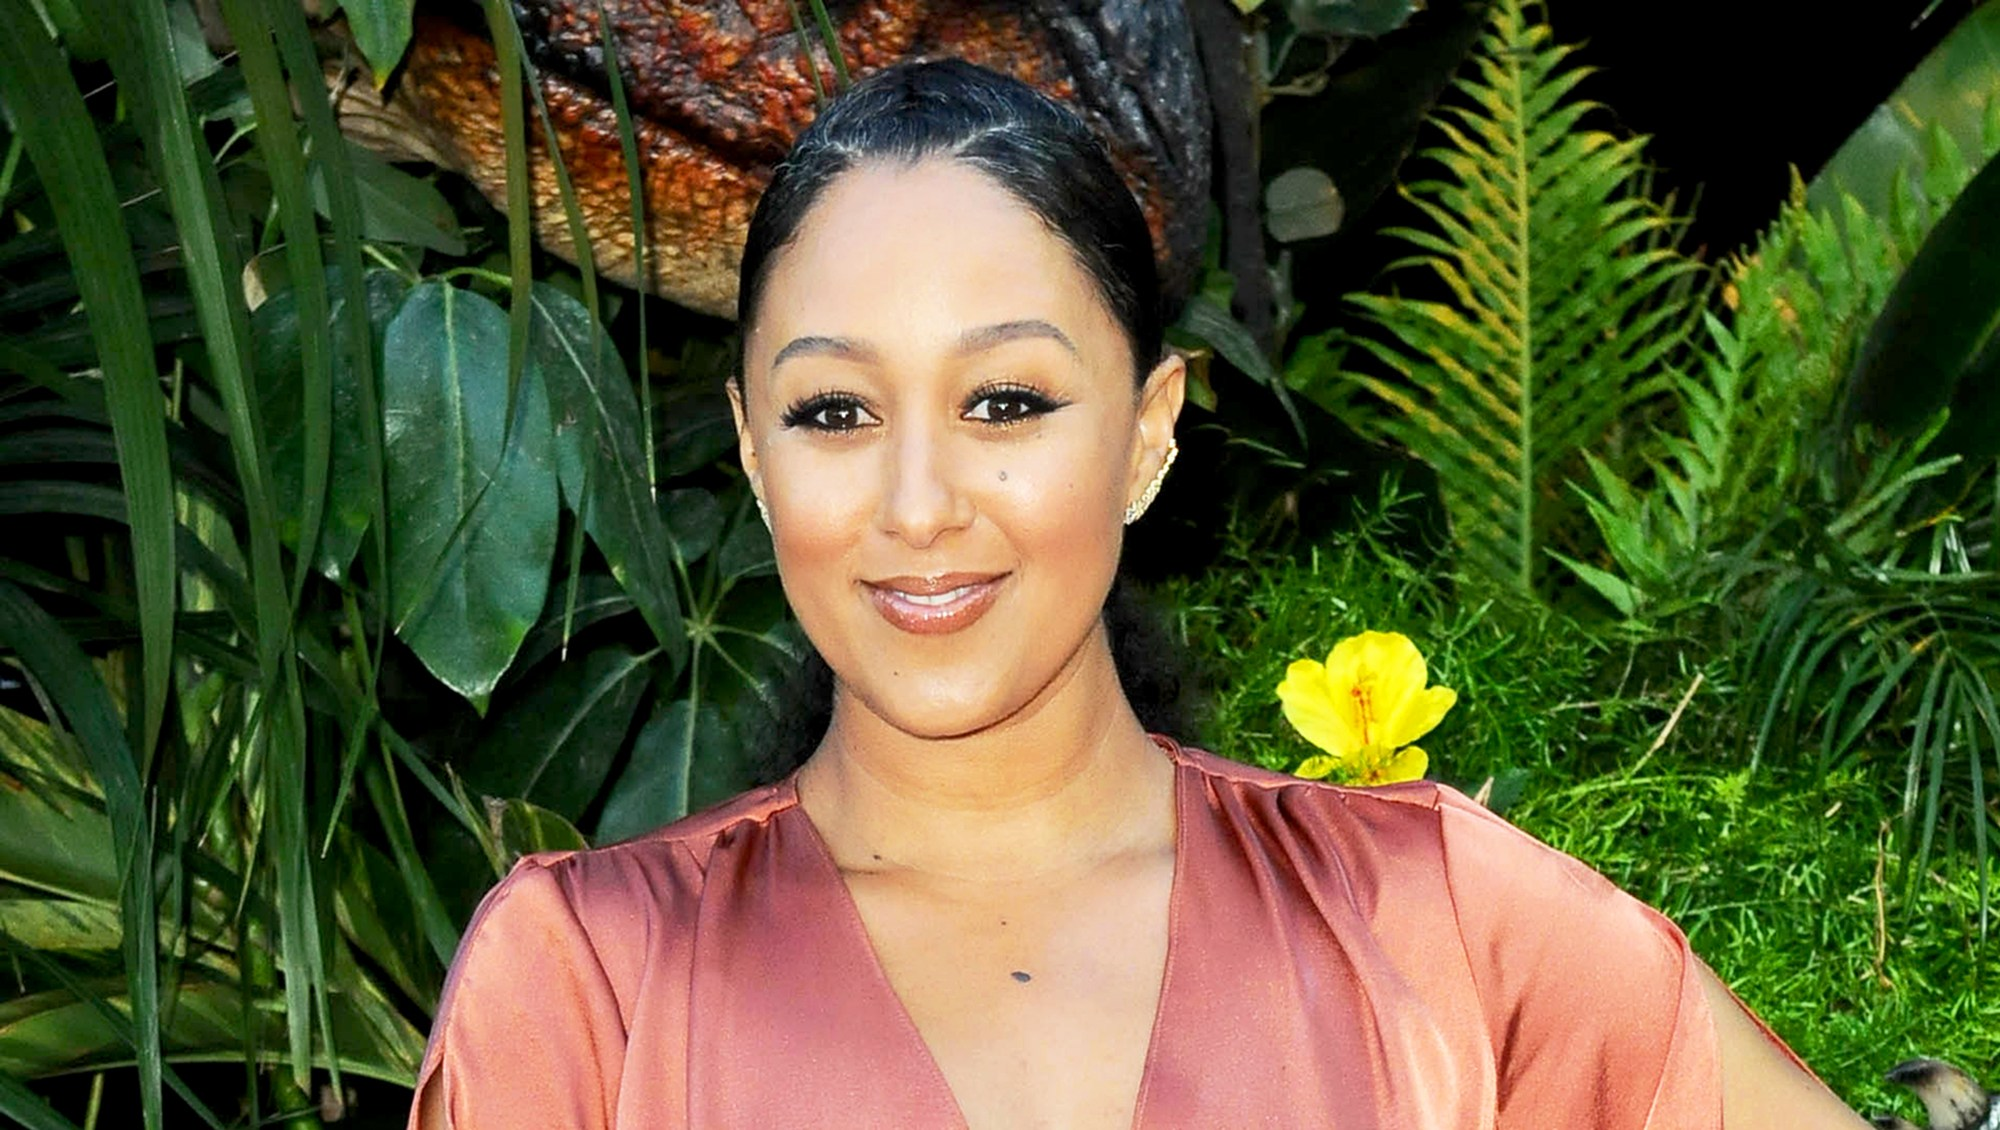 Tamara Mowry attends the premiere of Universal Pictures and Amblin Entertainment's 'Jurassic World: Fallen Kingdom' on June 12, 2018 in Los Angeles, California.